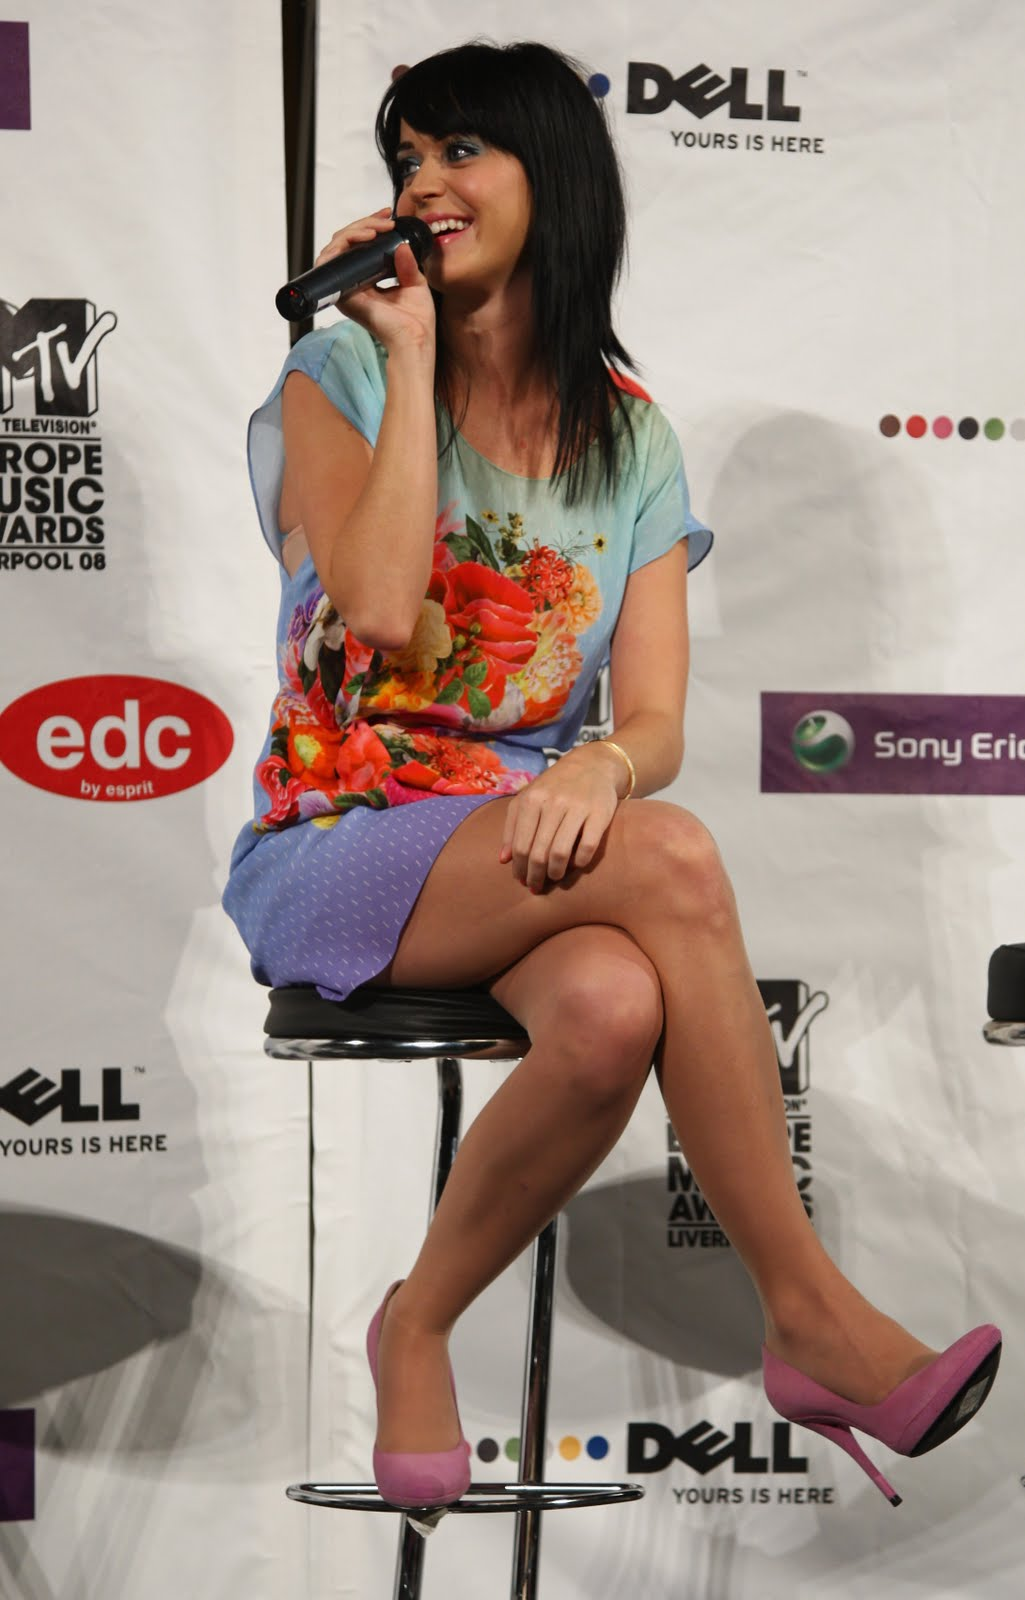 http://2.bp.blogspot.com/-o3out11NCjQ/Ta7-aUrM5eI/AAAAAAAAAG0/JfAXEkXYoOg/s1600/02030_Celebutopia-Katy_Perry-MTV_Europe_Music_Awards_Press_Conference-16_122_366lo.jpg